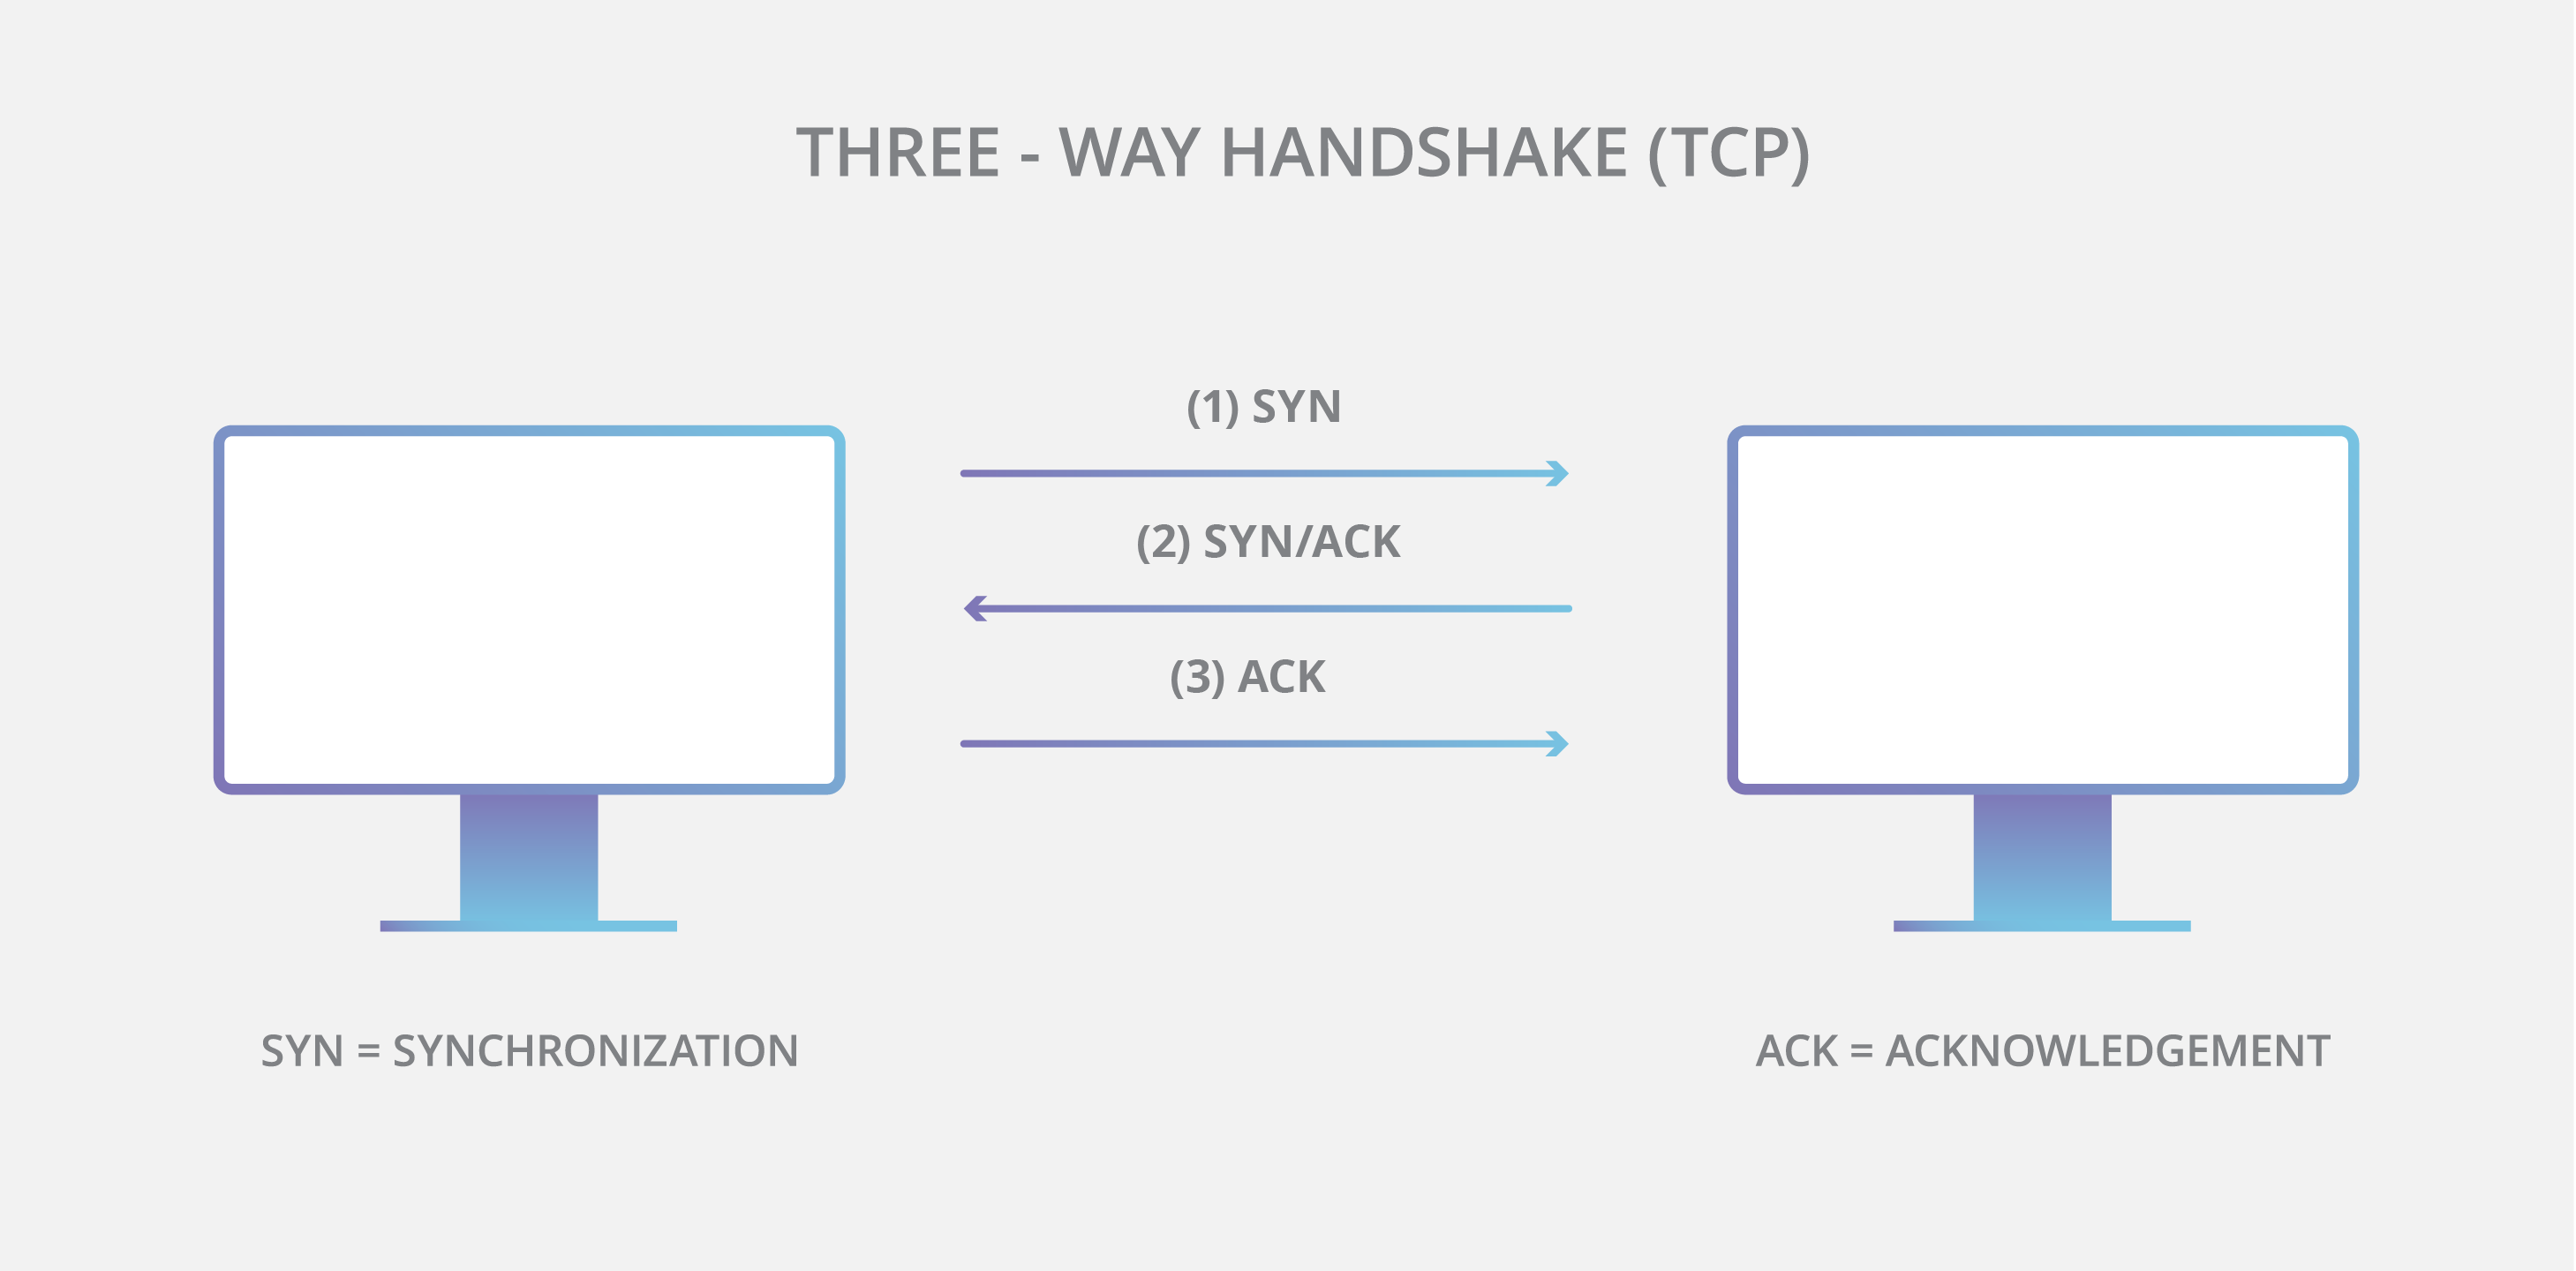 TCP handshake diagram